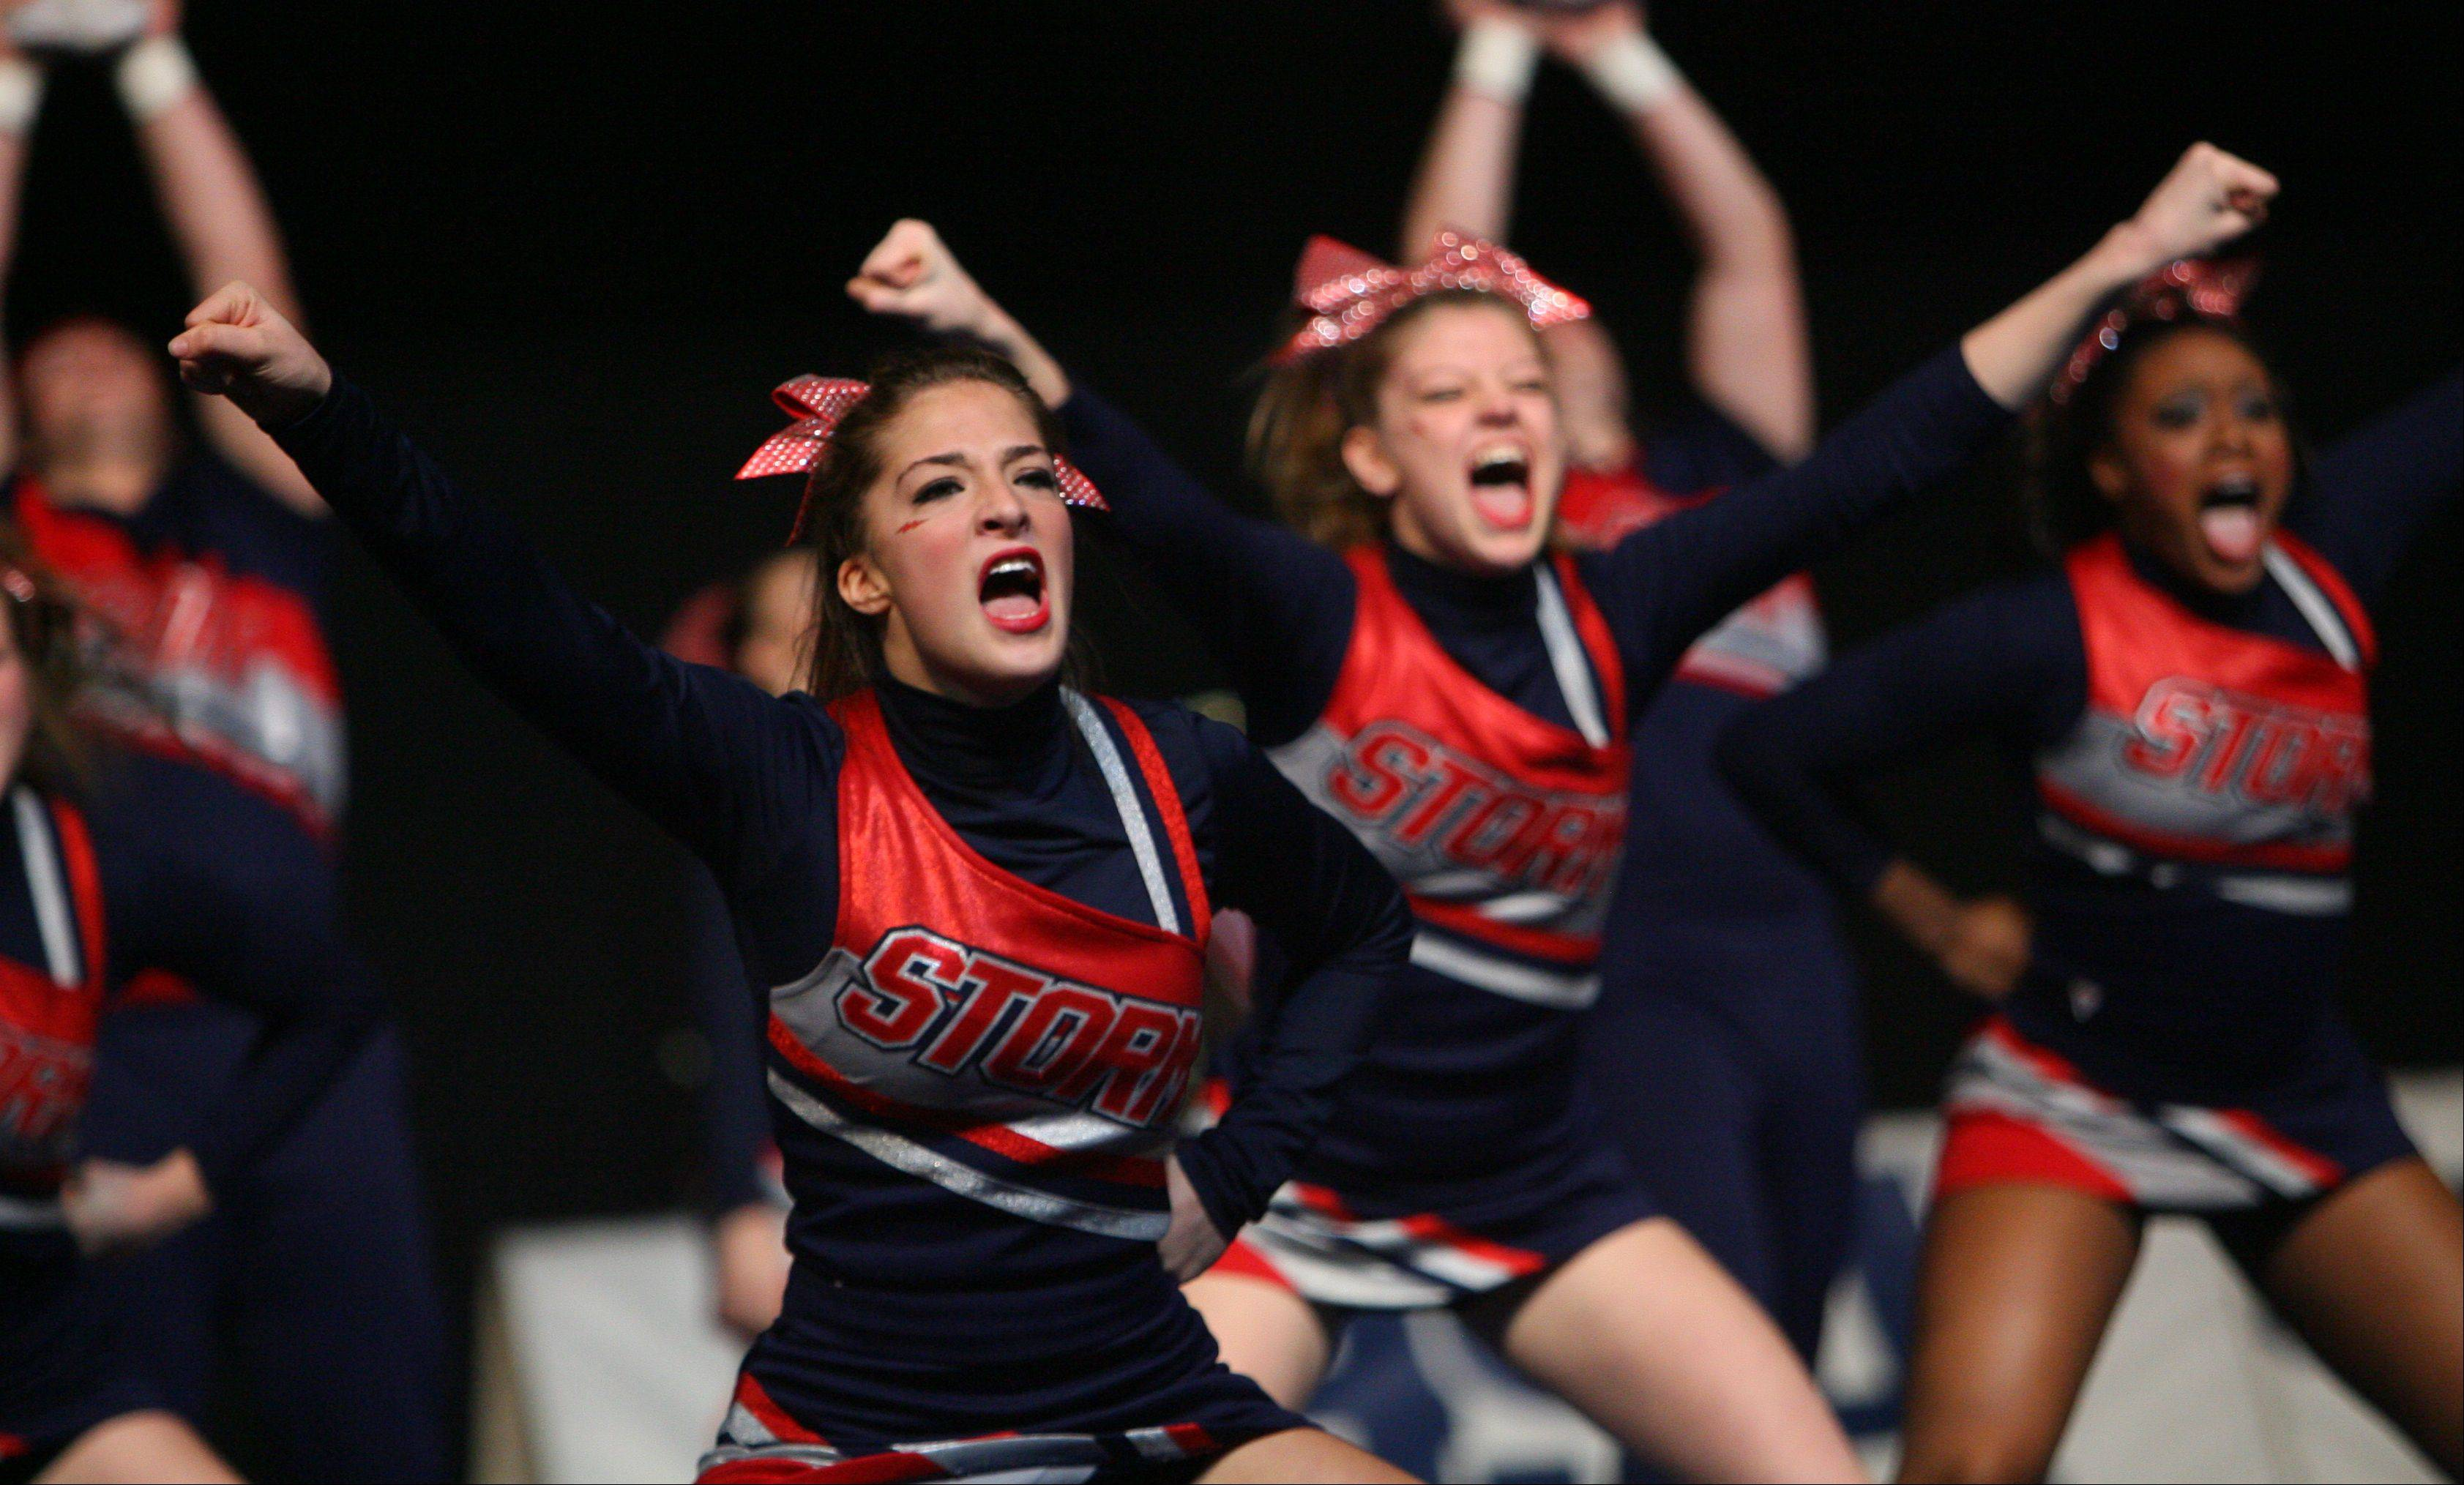 South Elgin High School participates in the IHSA Competitive Cheerleading finals on Saturday, Feb. 2 at the U.S. Cellular Coliseum in Bloomington.